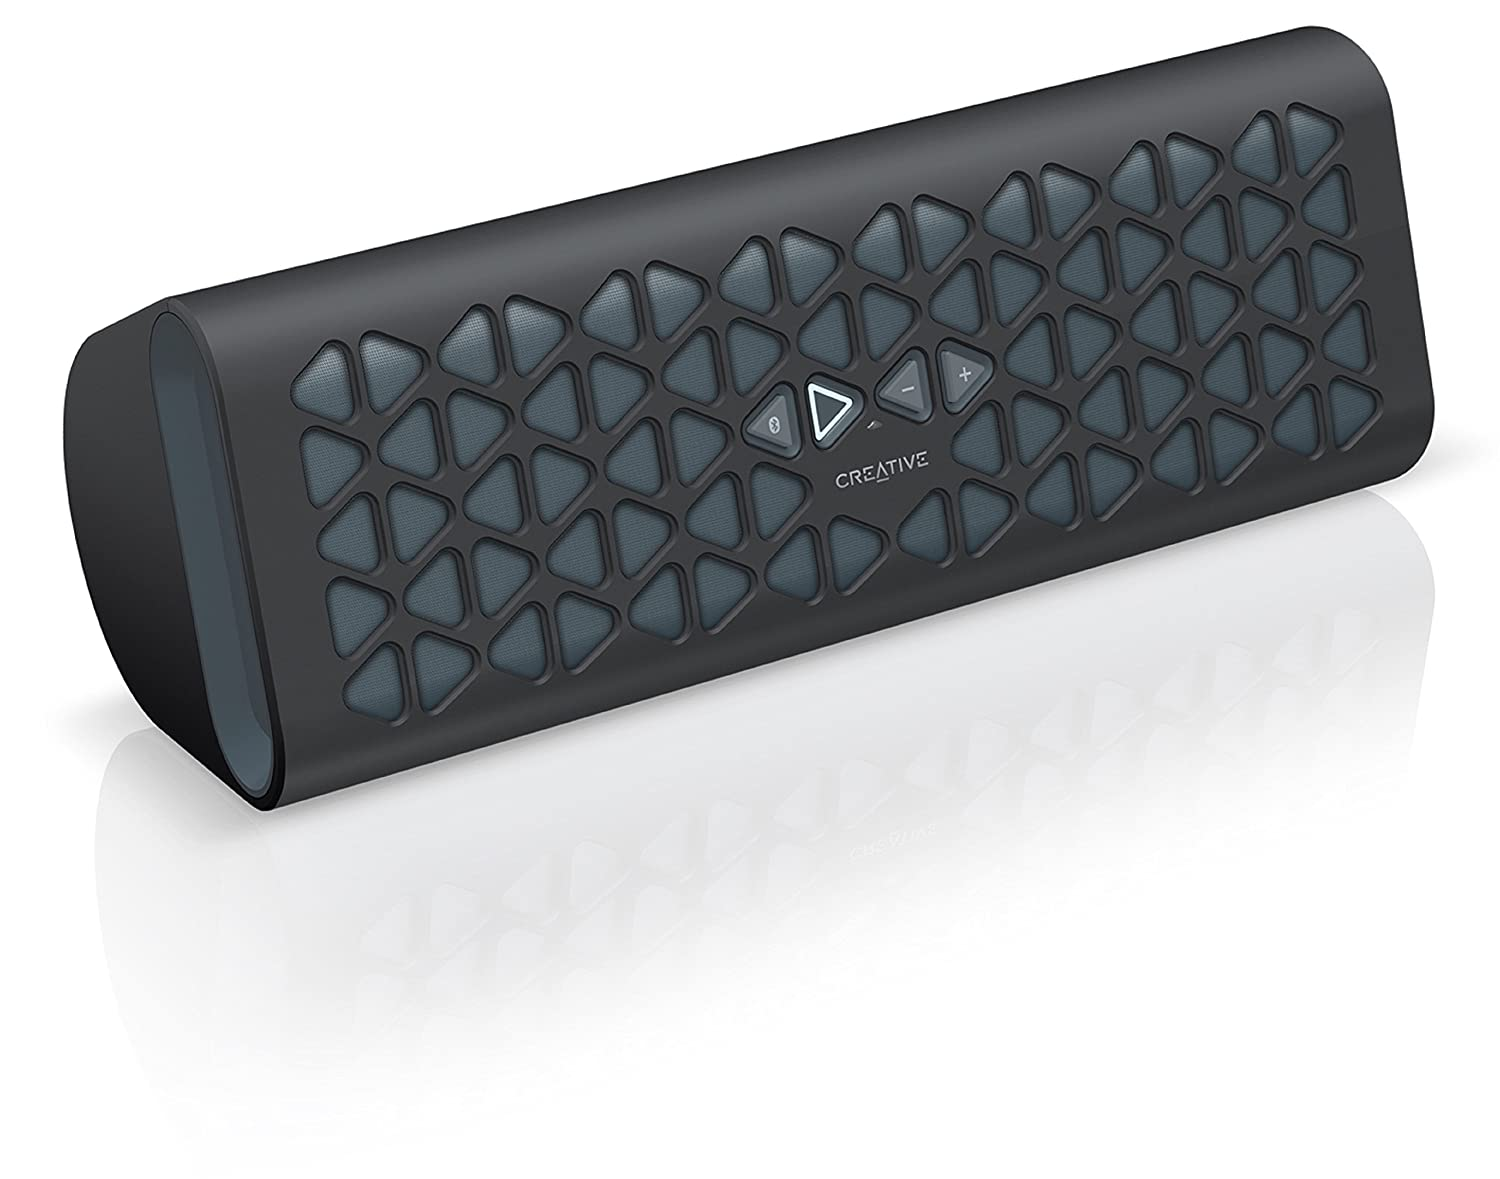 Price available in white or black for about 2399 for all four - Buy Creative Muvo 20 Portable Wireless Speaker Black Online At Low Prices In India Amazon In